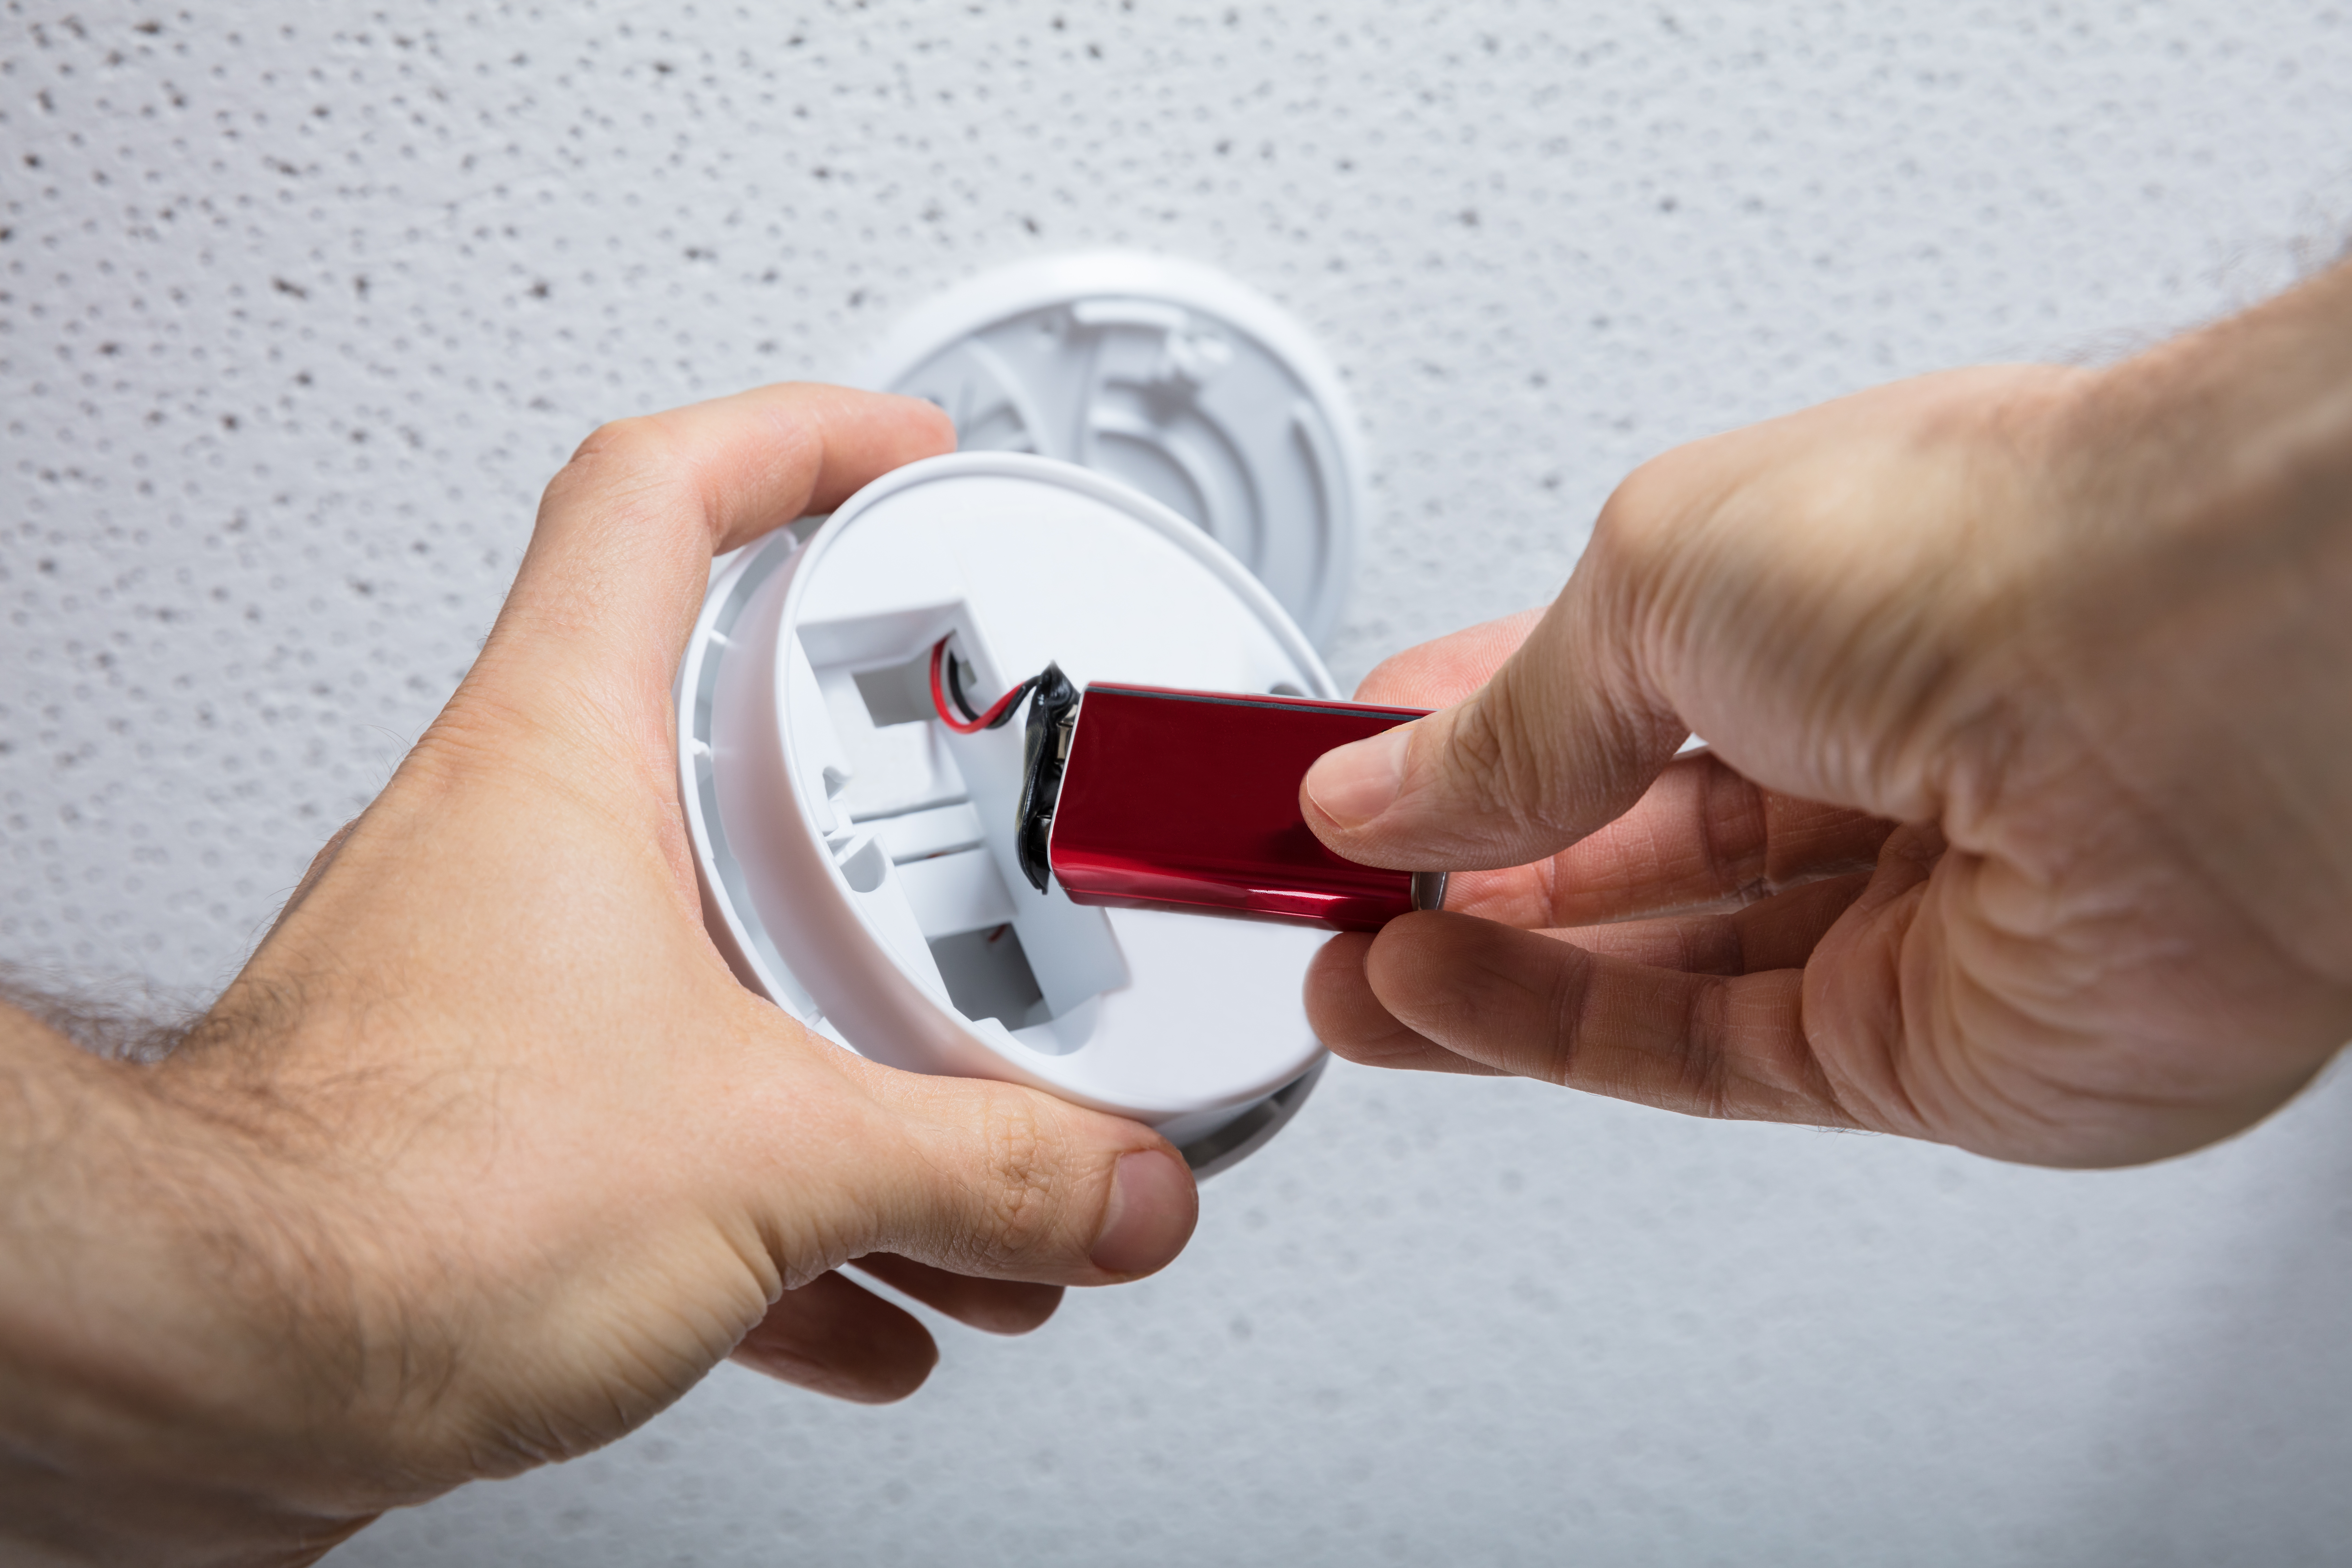 Making Home Fire Safety a Priority